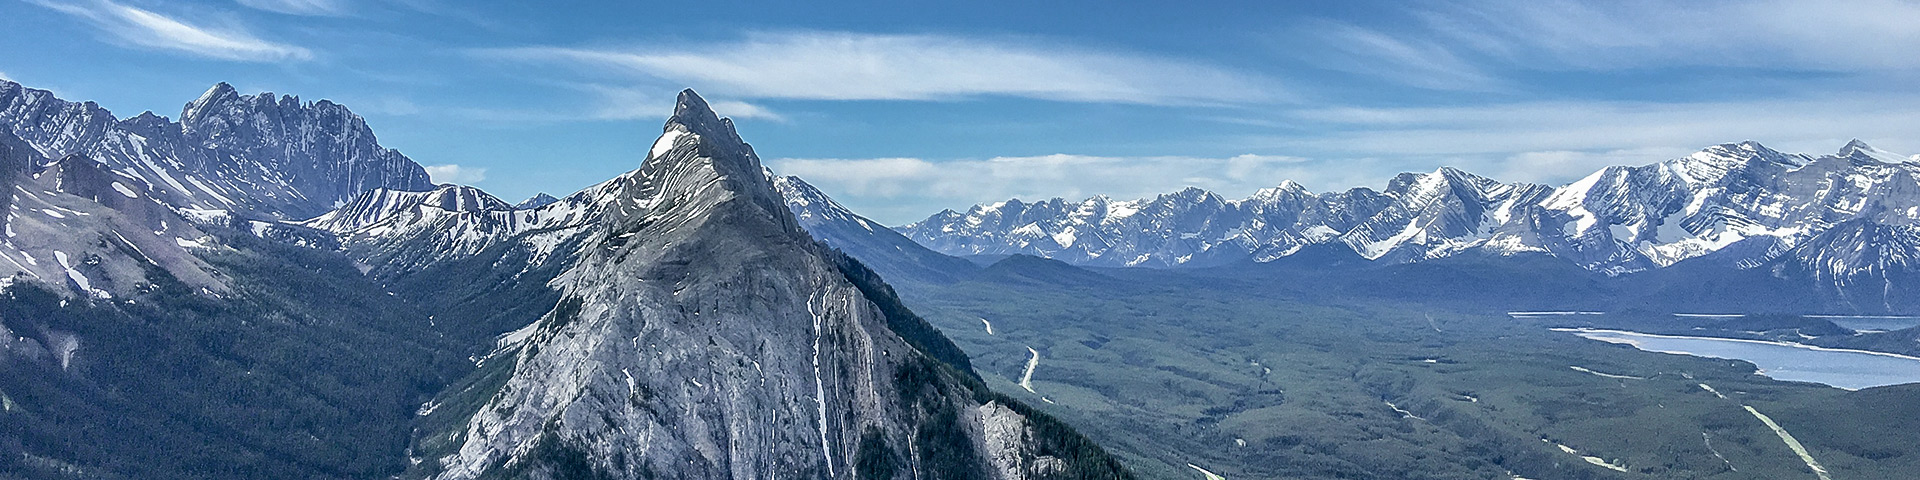 Panorama of the King Creek Ridge hike from Kananaskis near Canmore